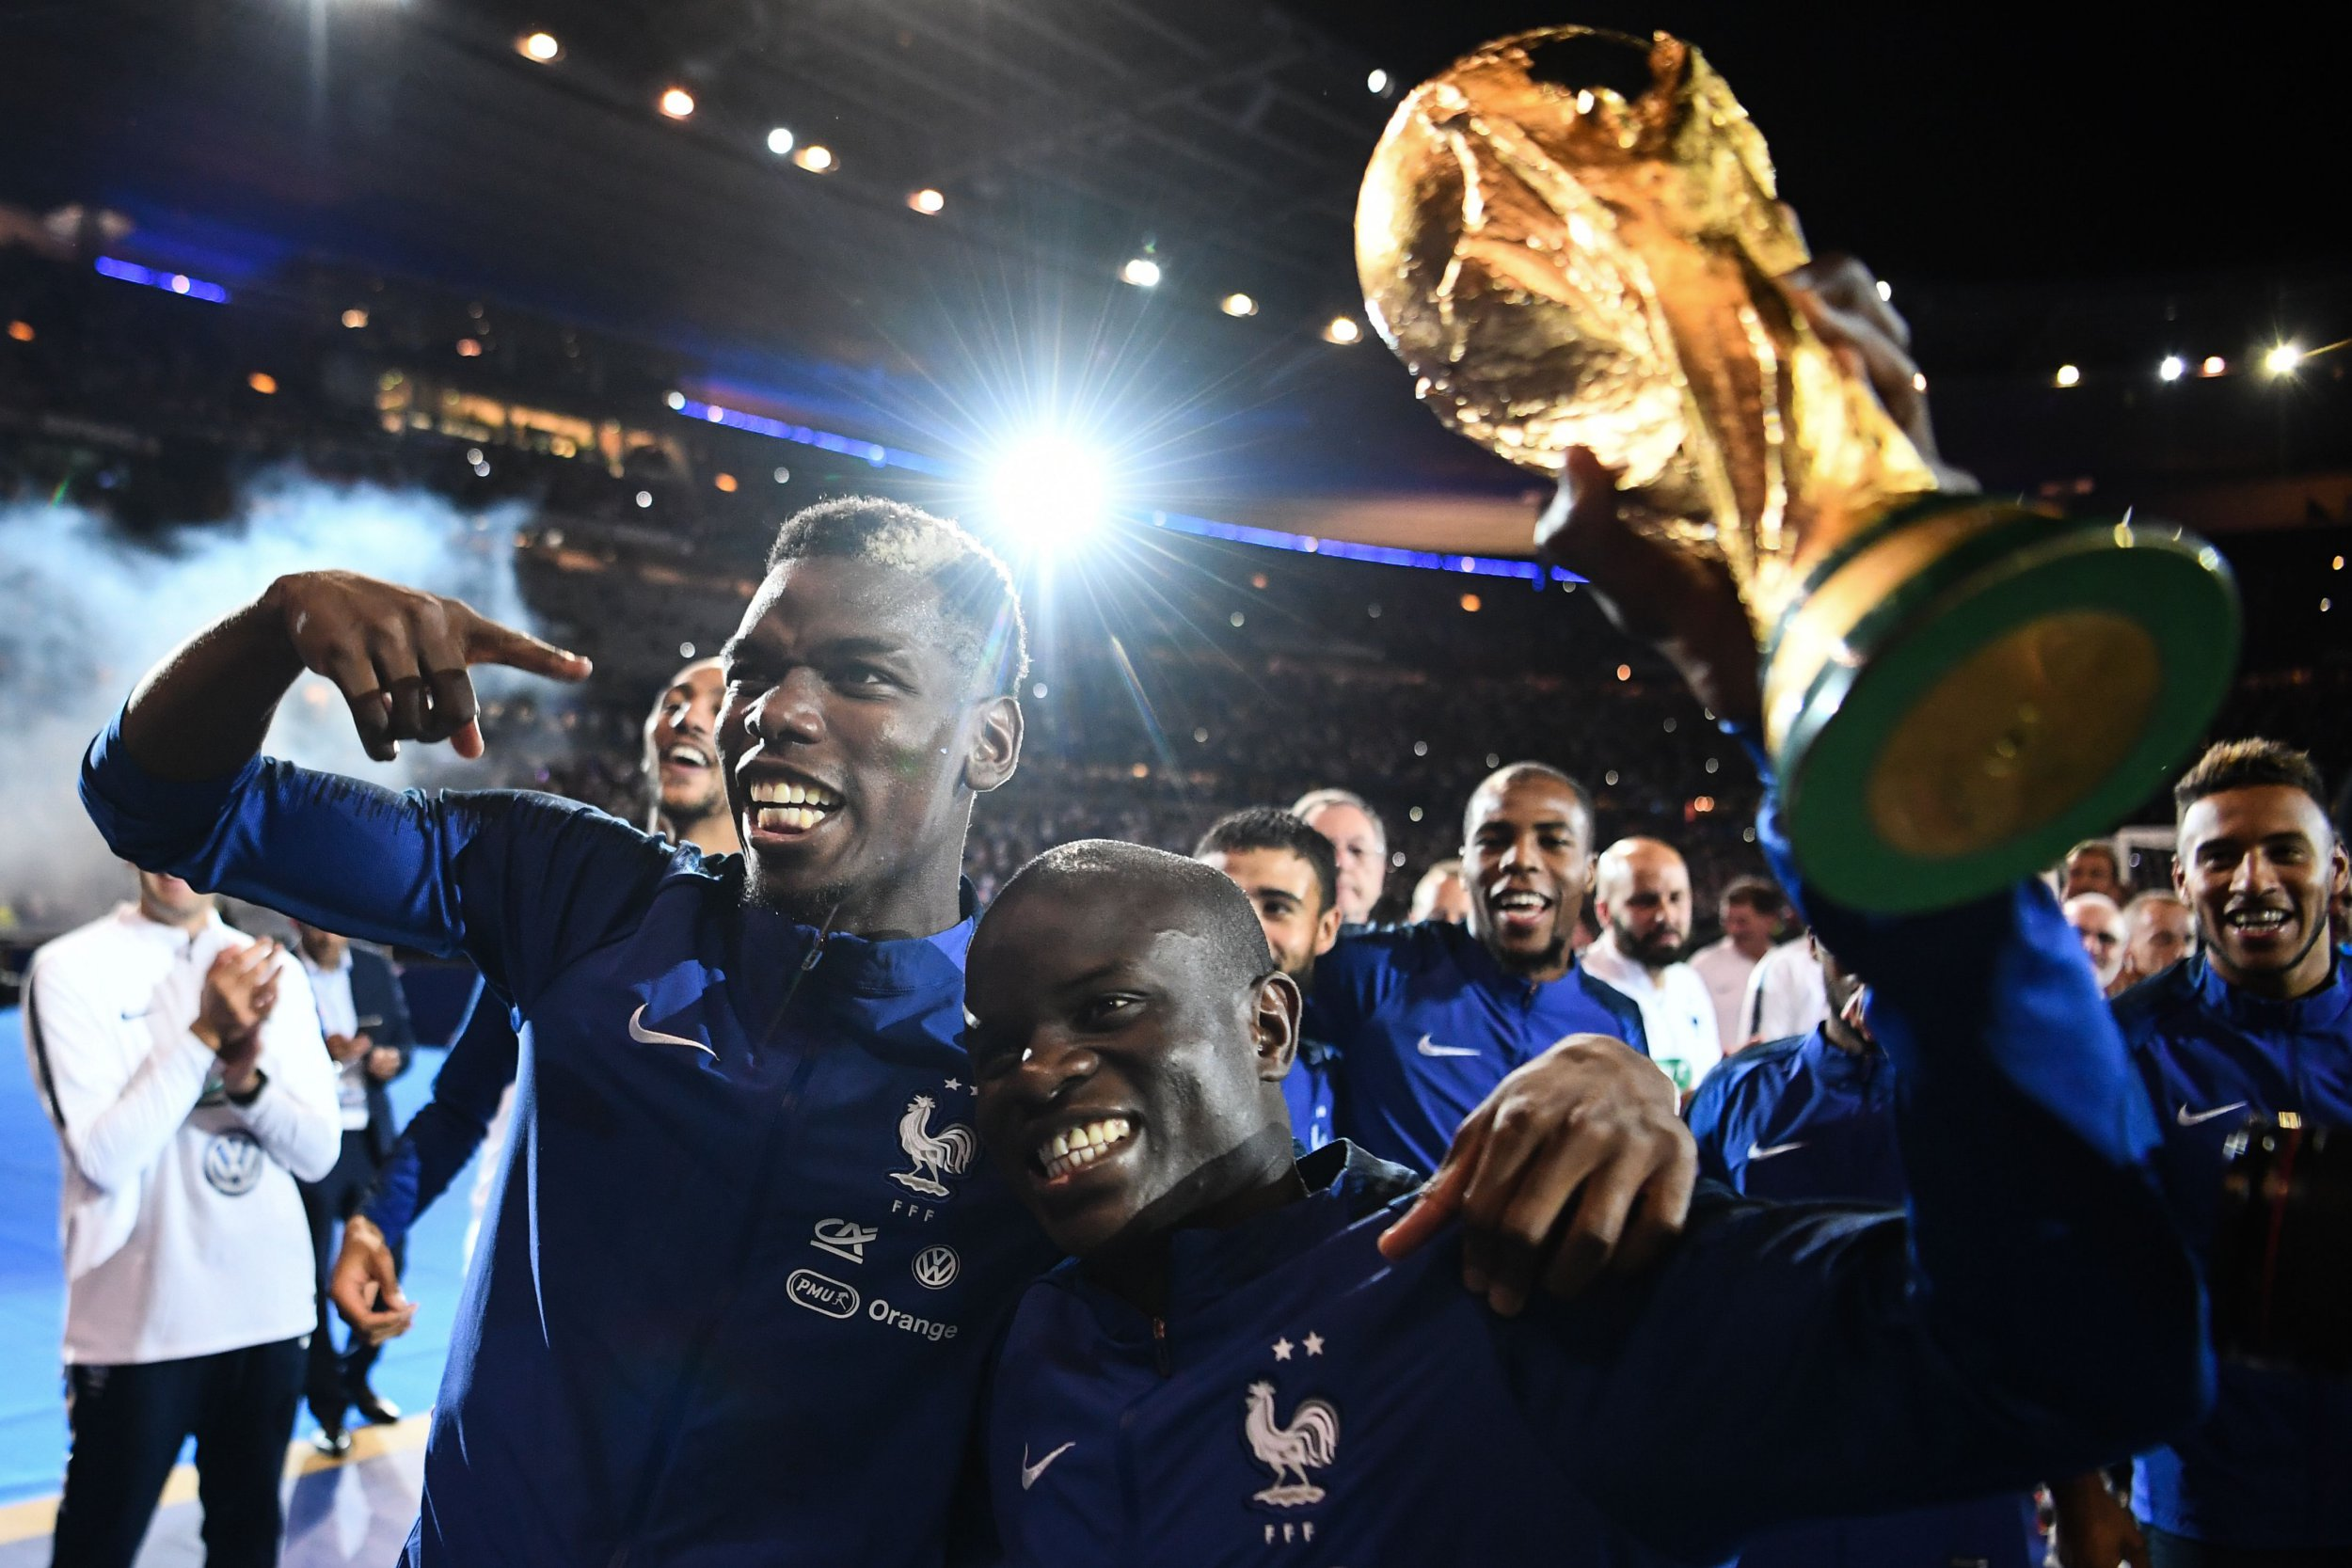 Entire Stade de France crowd sing N'Golo Kante chant during World Cup celebrations